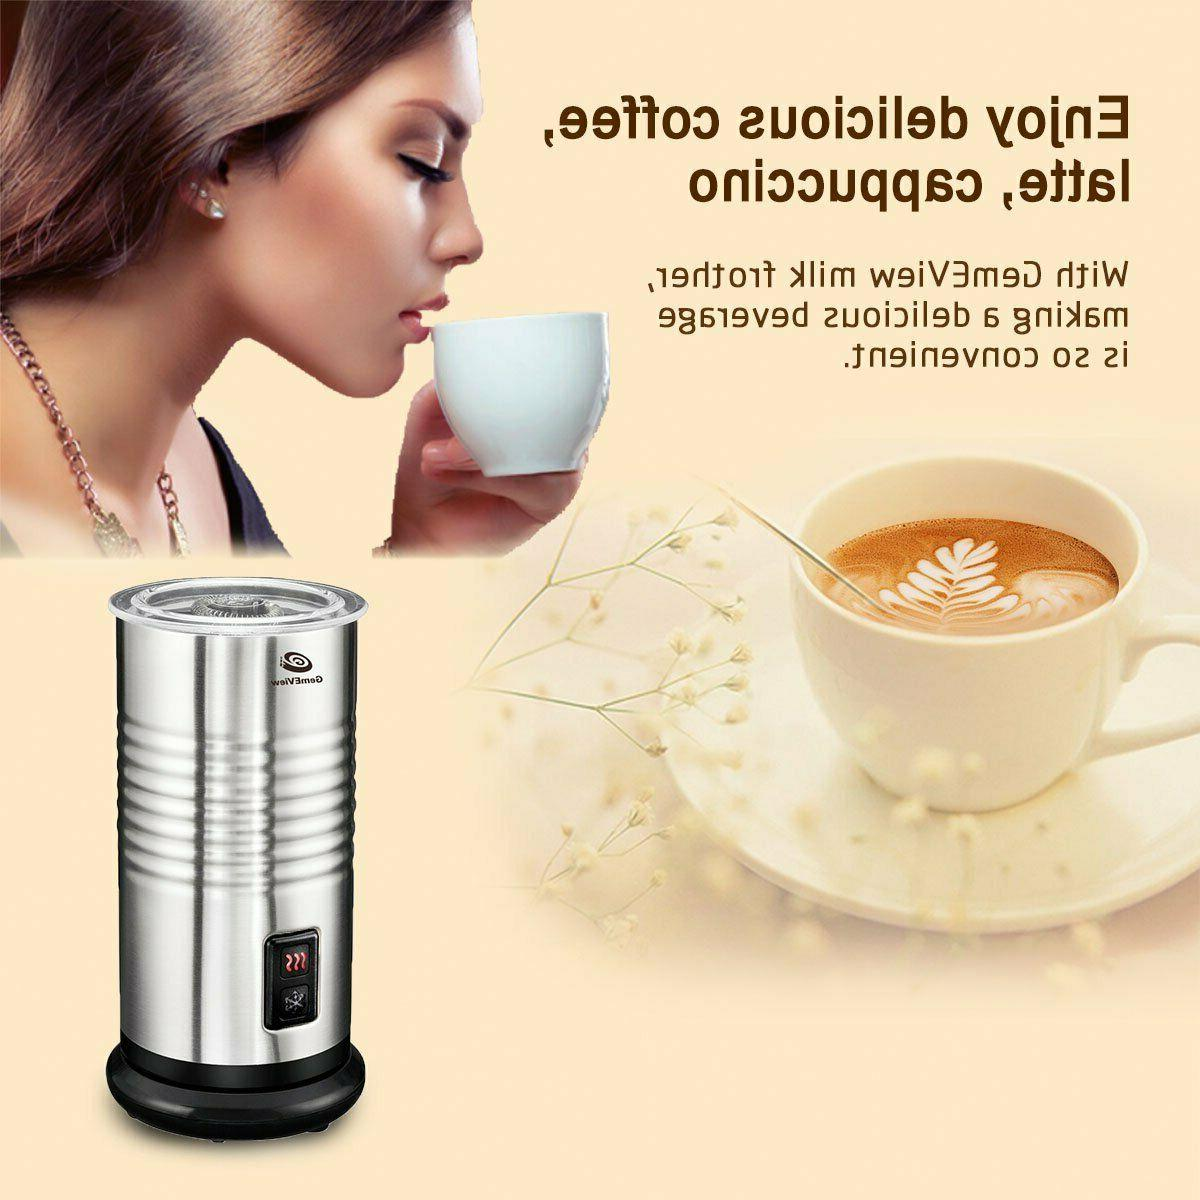 Stainless Steel Electric Milk Frother Warmer and